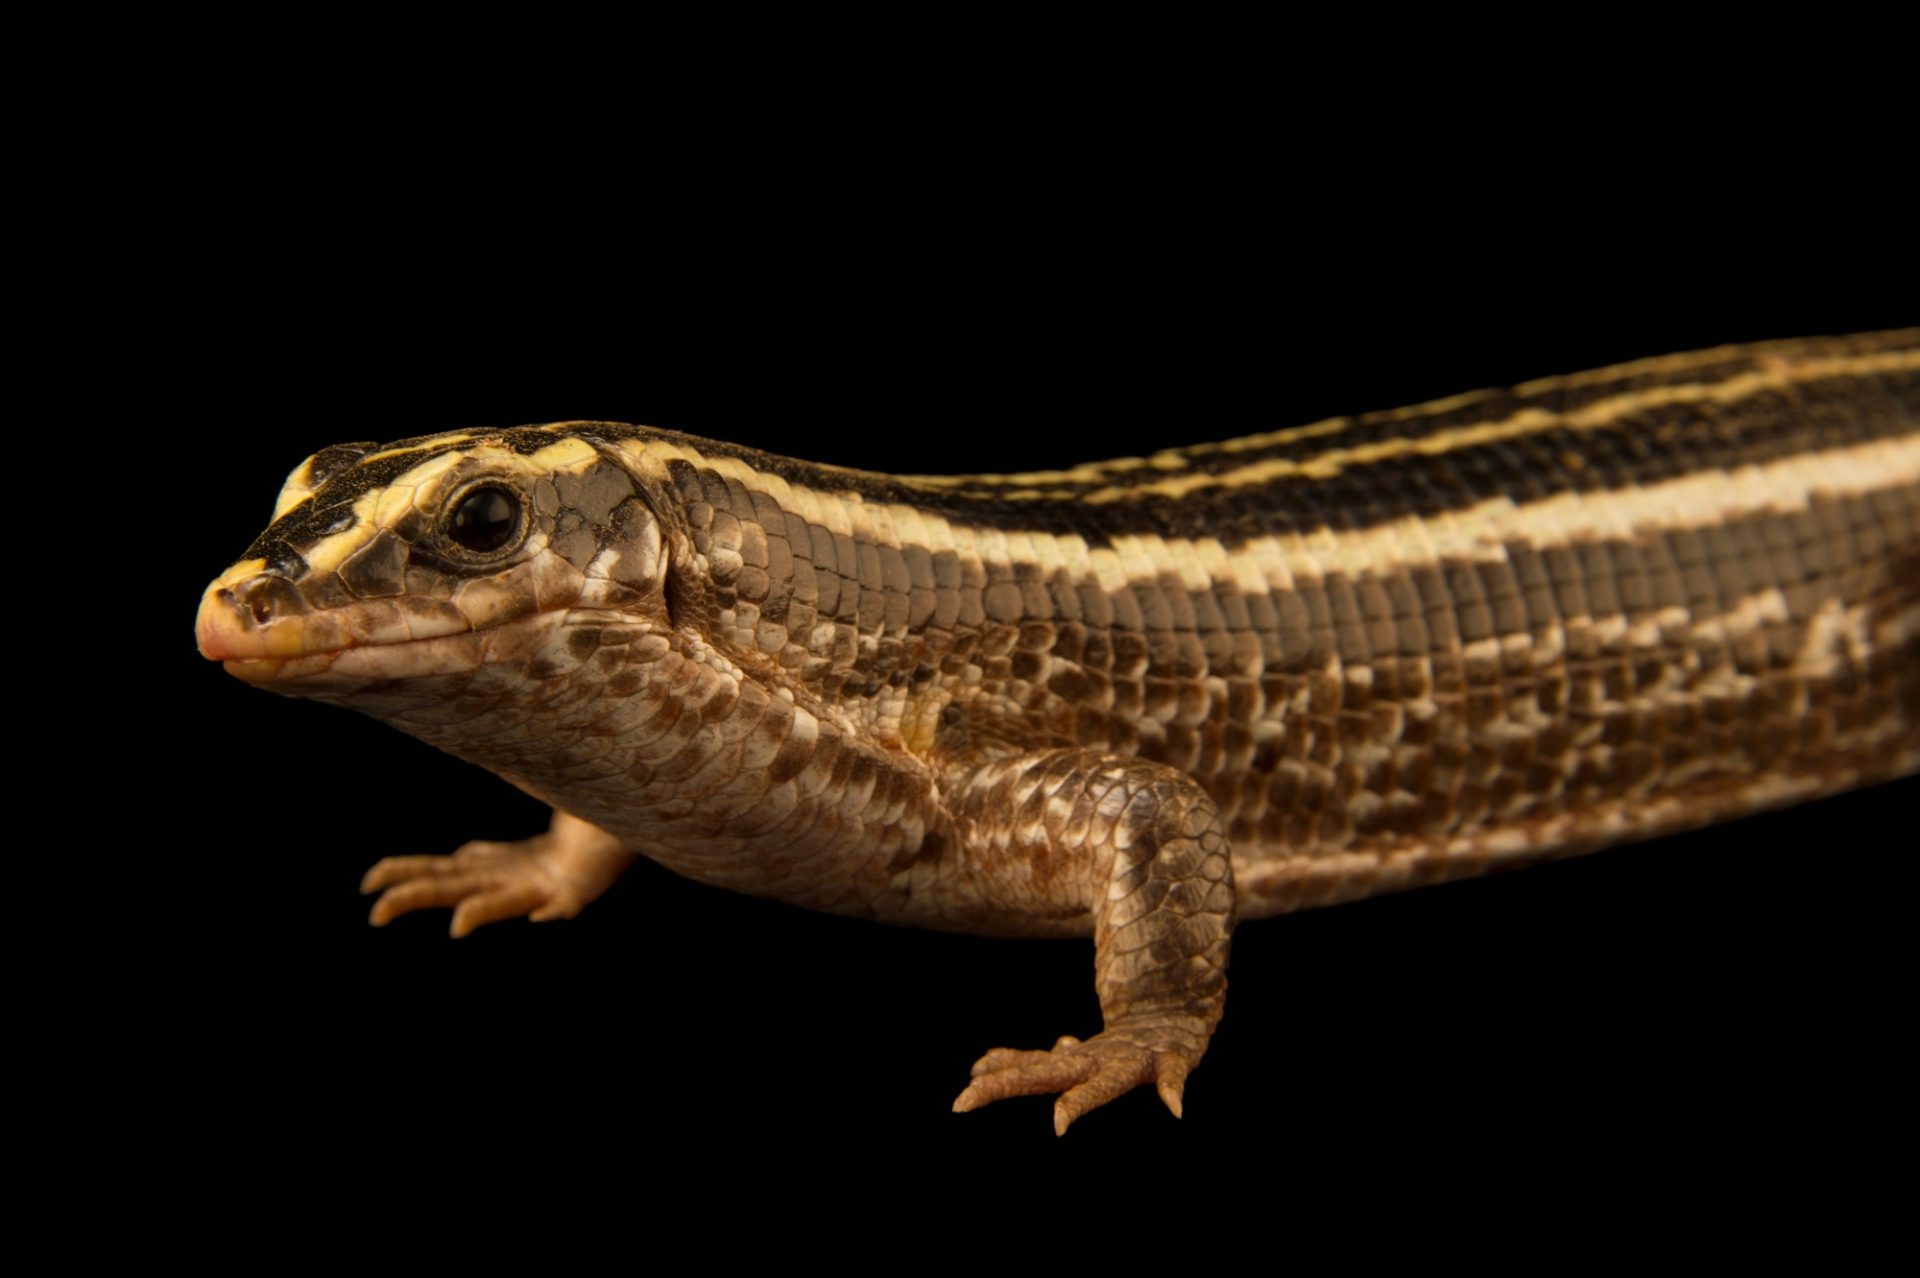 Photo: A four striped girdled lizard, Zonosaurus quadrilineatus, at Tsimbazaza Zoo.